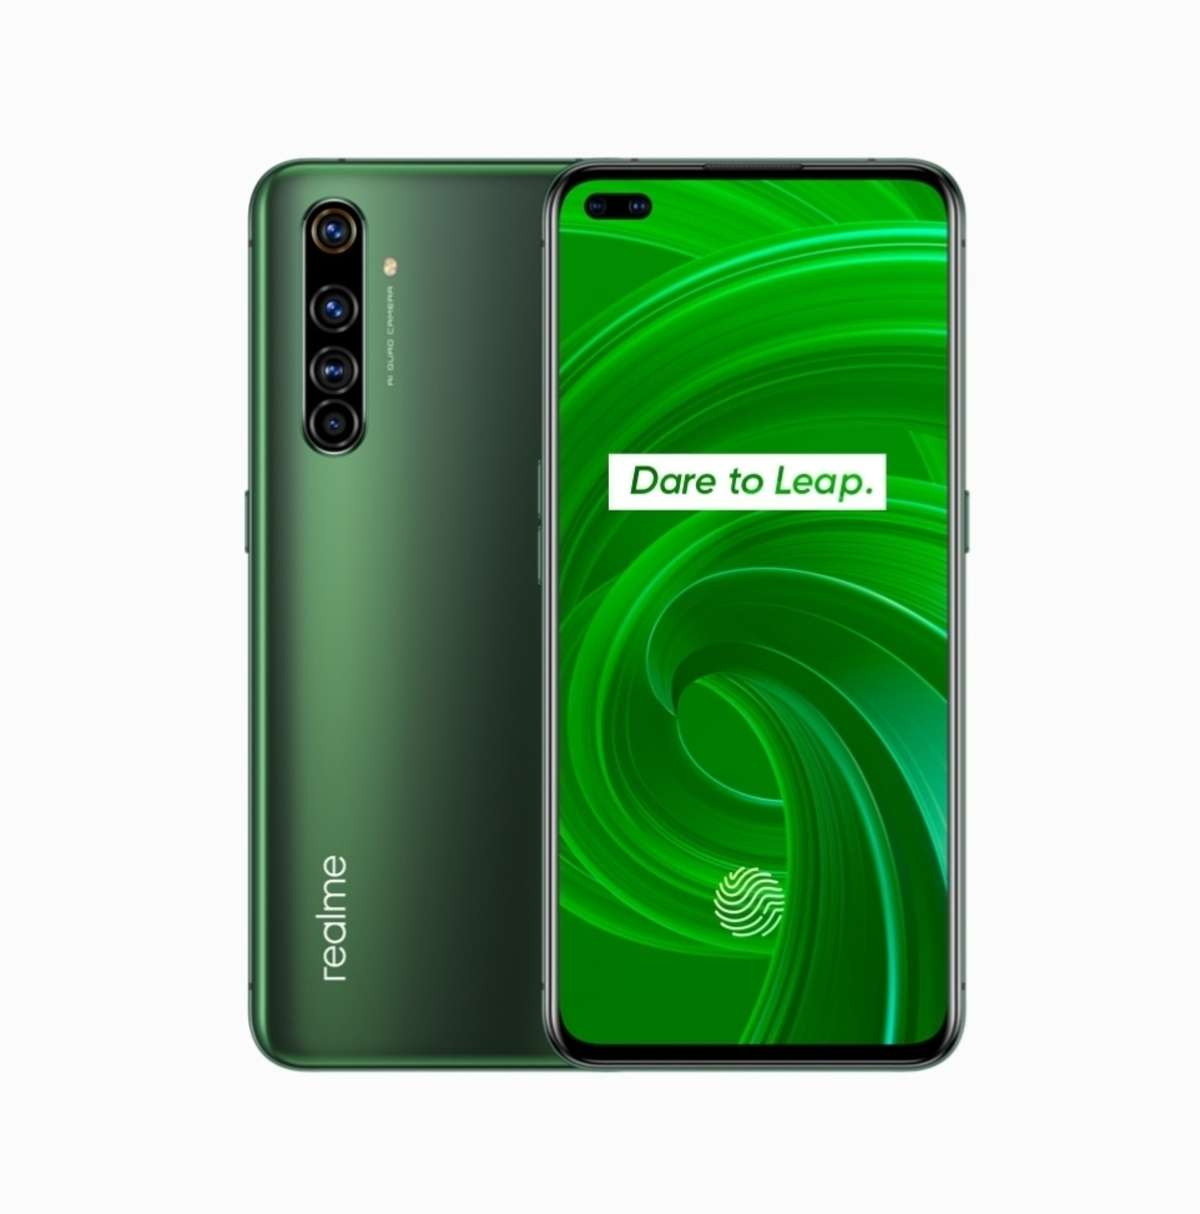 Realme x50 pro 5G price in Nigeria, Realme x50 pro 5g, price of the new realme x50 pro 5g in Nigeria, Realme x50 Pro 5G specs and price in Nigeria, how much is the price of Realme X50 Pro 5G in Nigeria, Realme x50 pro